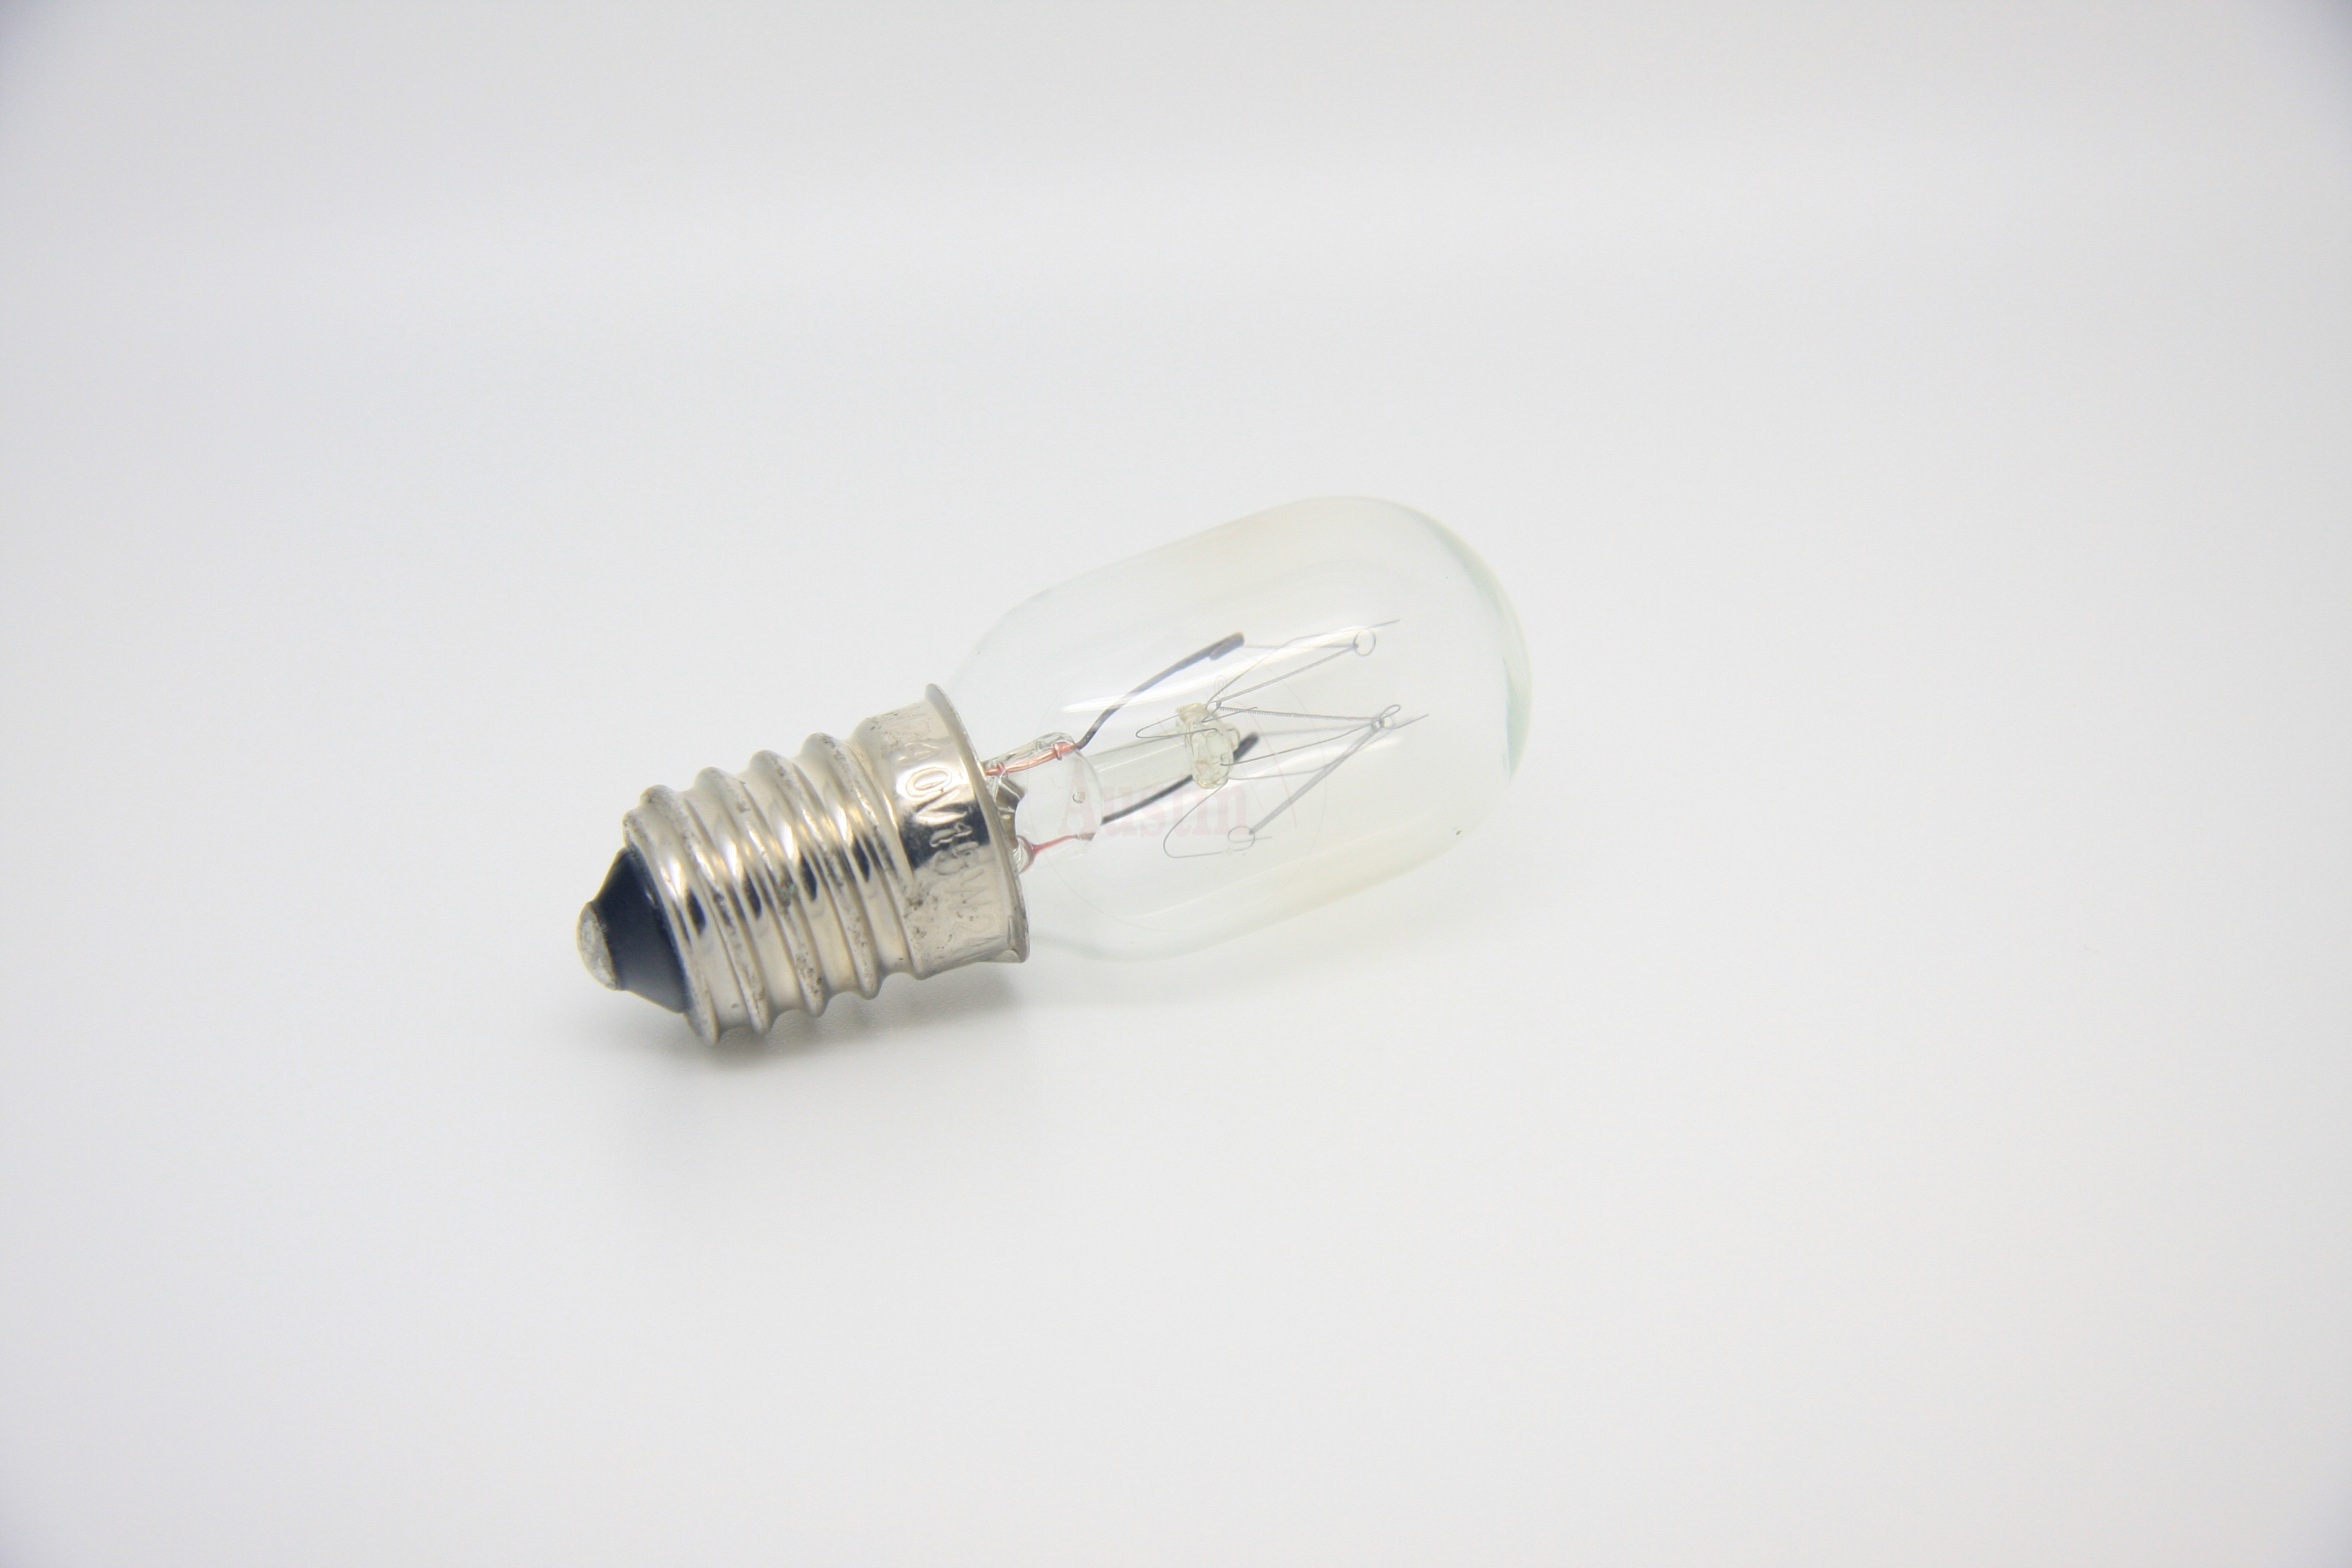 Sewing Machine Light Bulb Screw In 15 Watt SES/E14